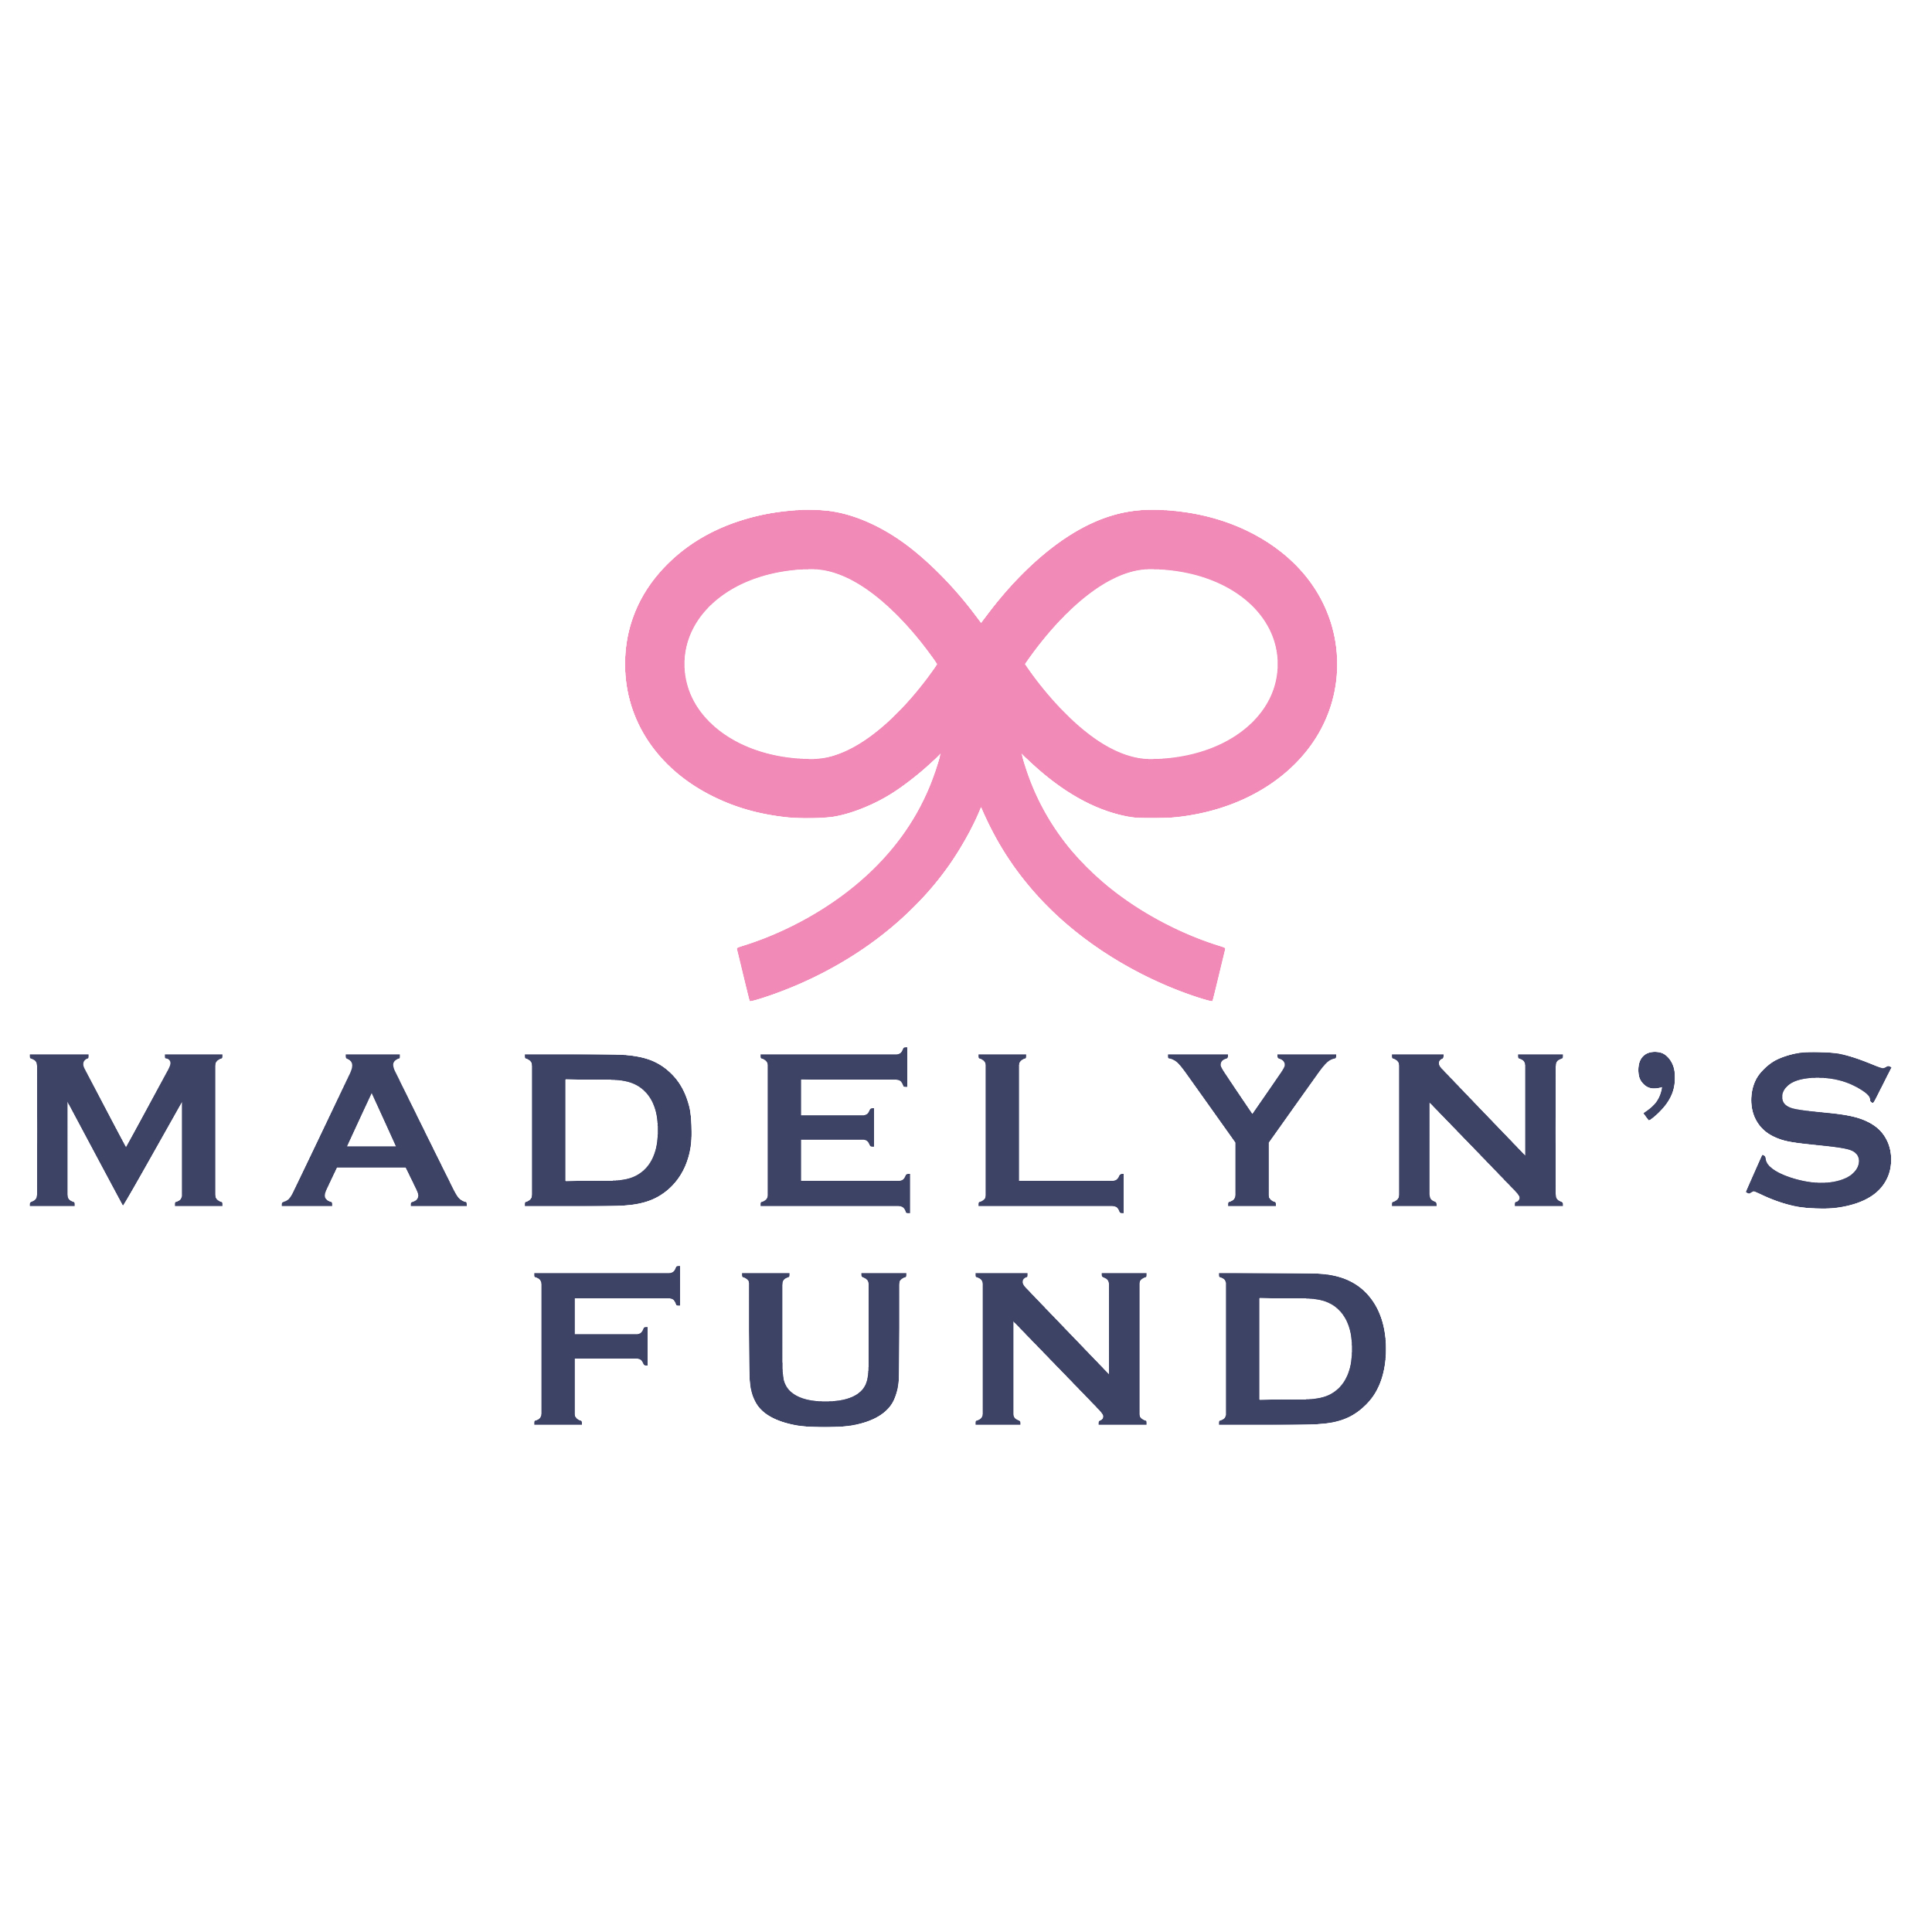 Madelyn's Fund image 1